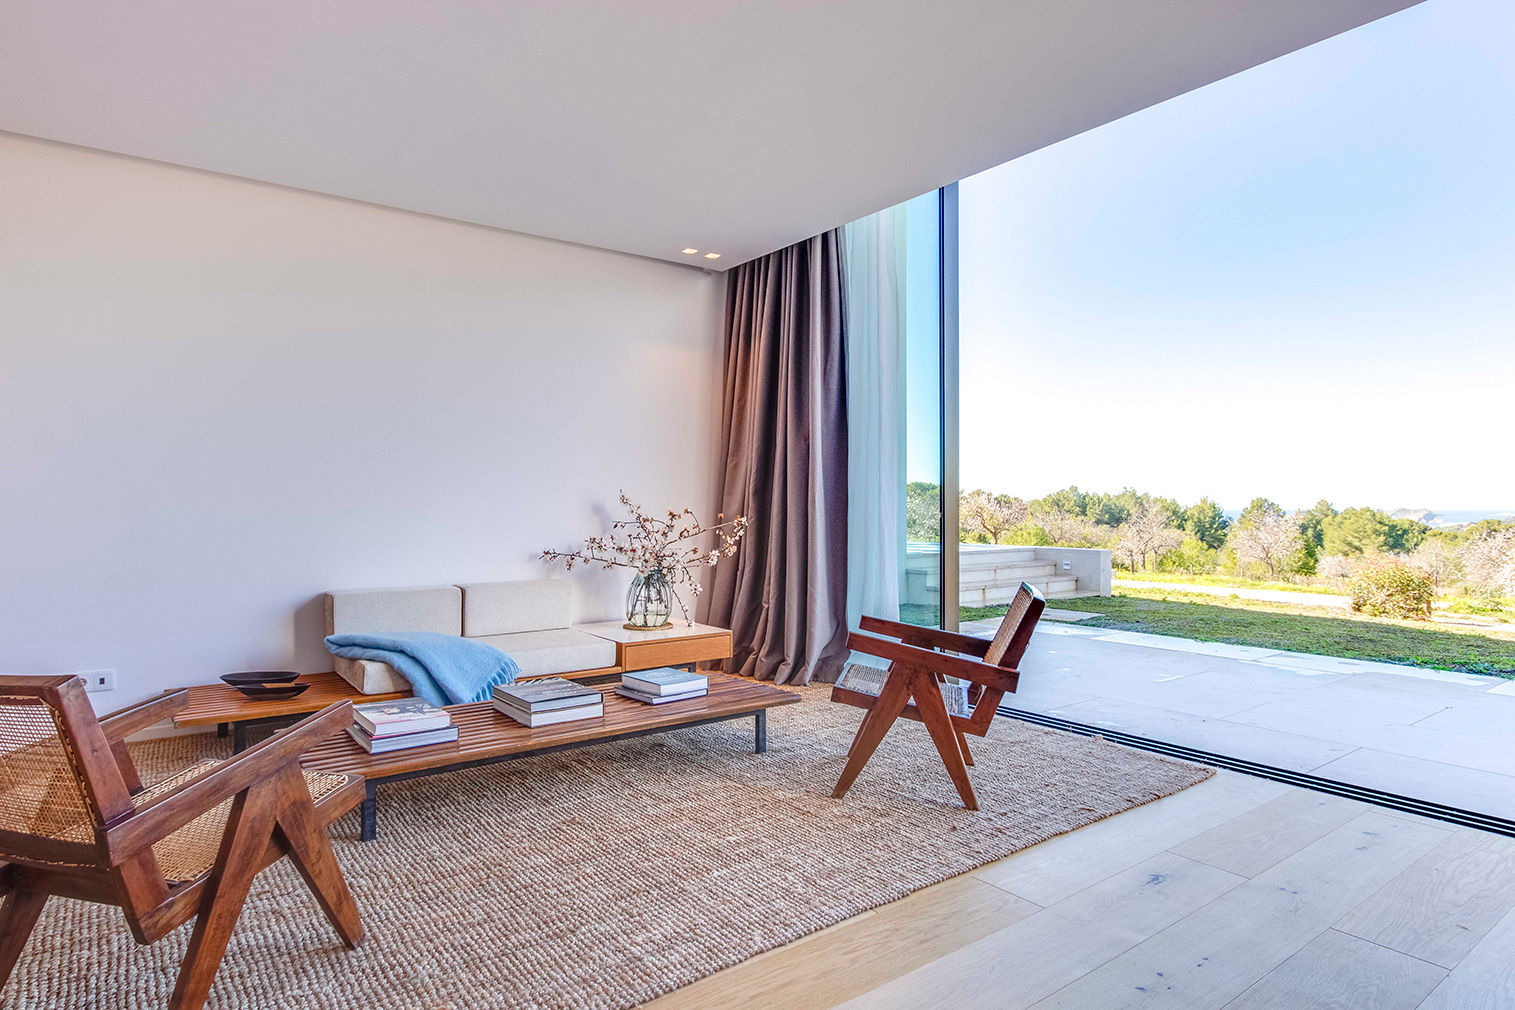 Ibizan holiday villas where you can catch the last summer rays: Can Mikkie villa